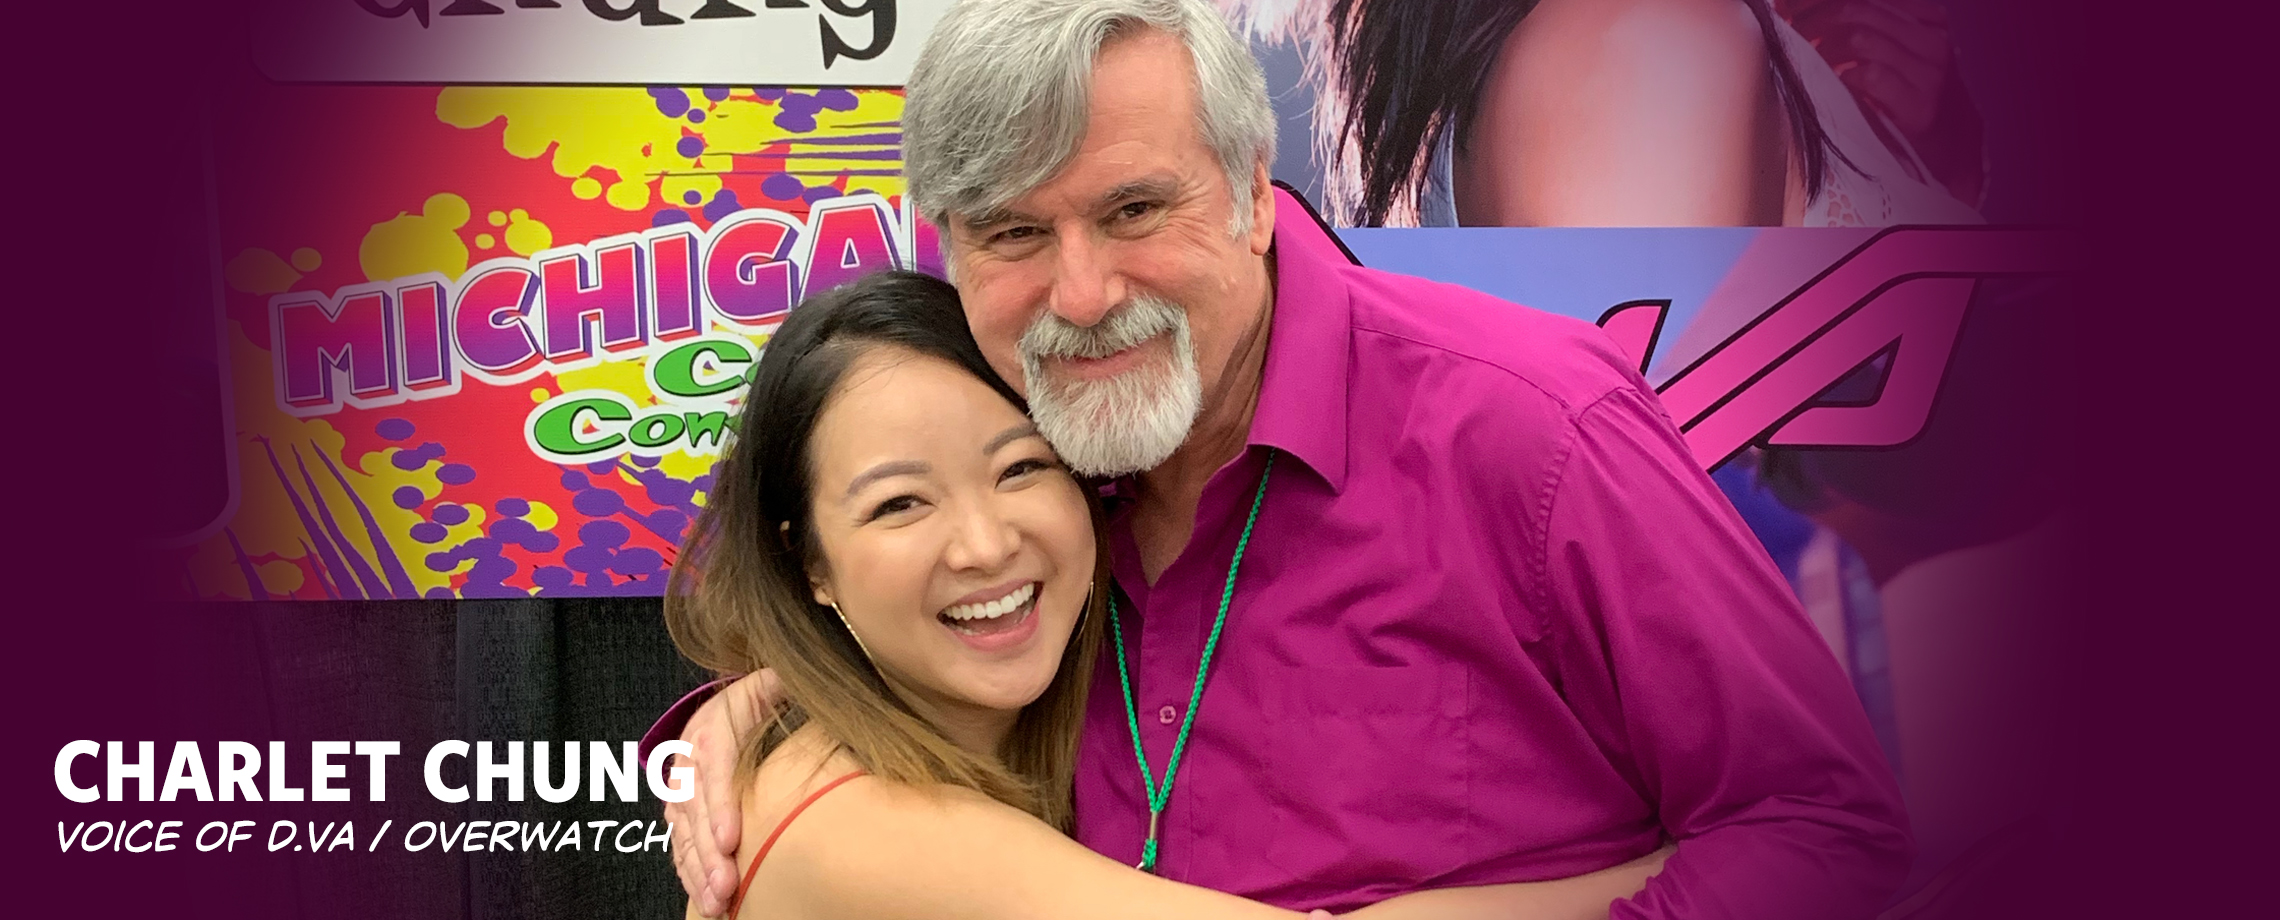 Michigan Comic Con 2019 - Bob West with Charlet Chung, Voice of D.Va